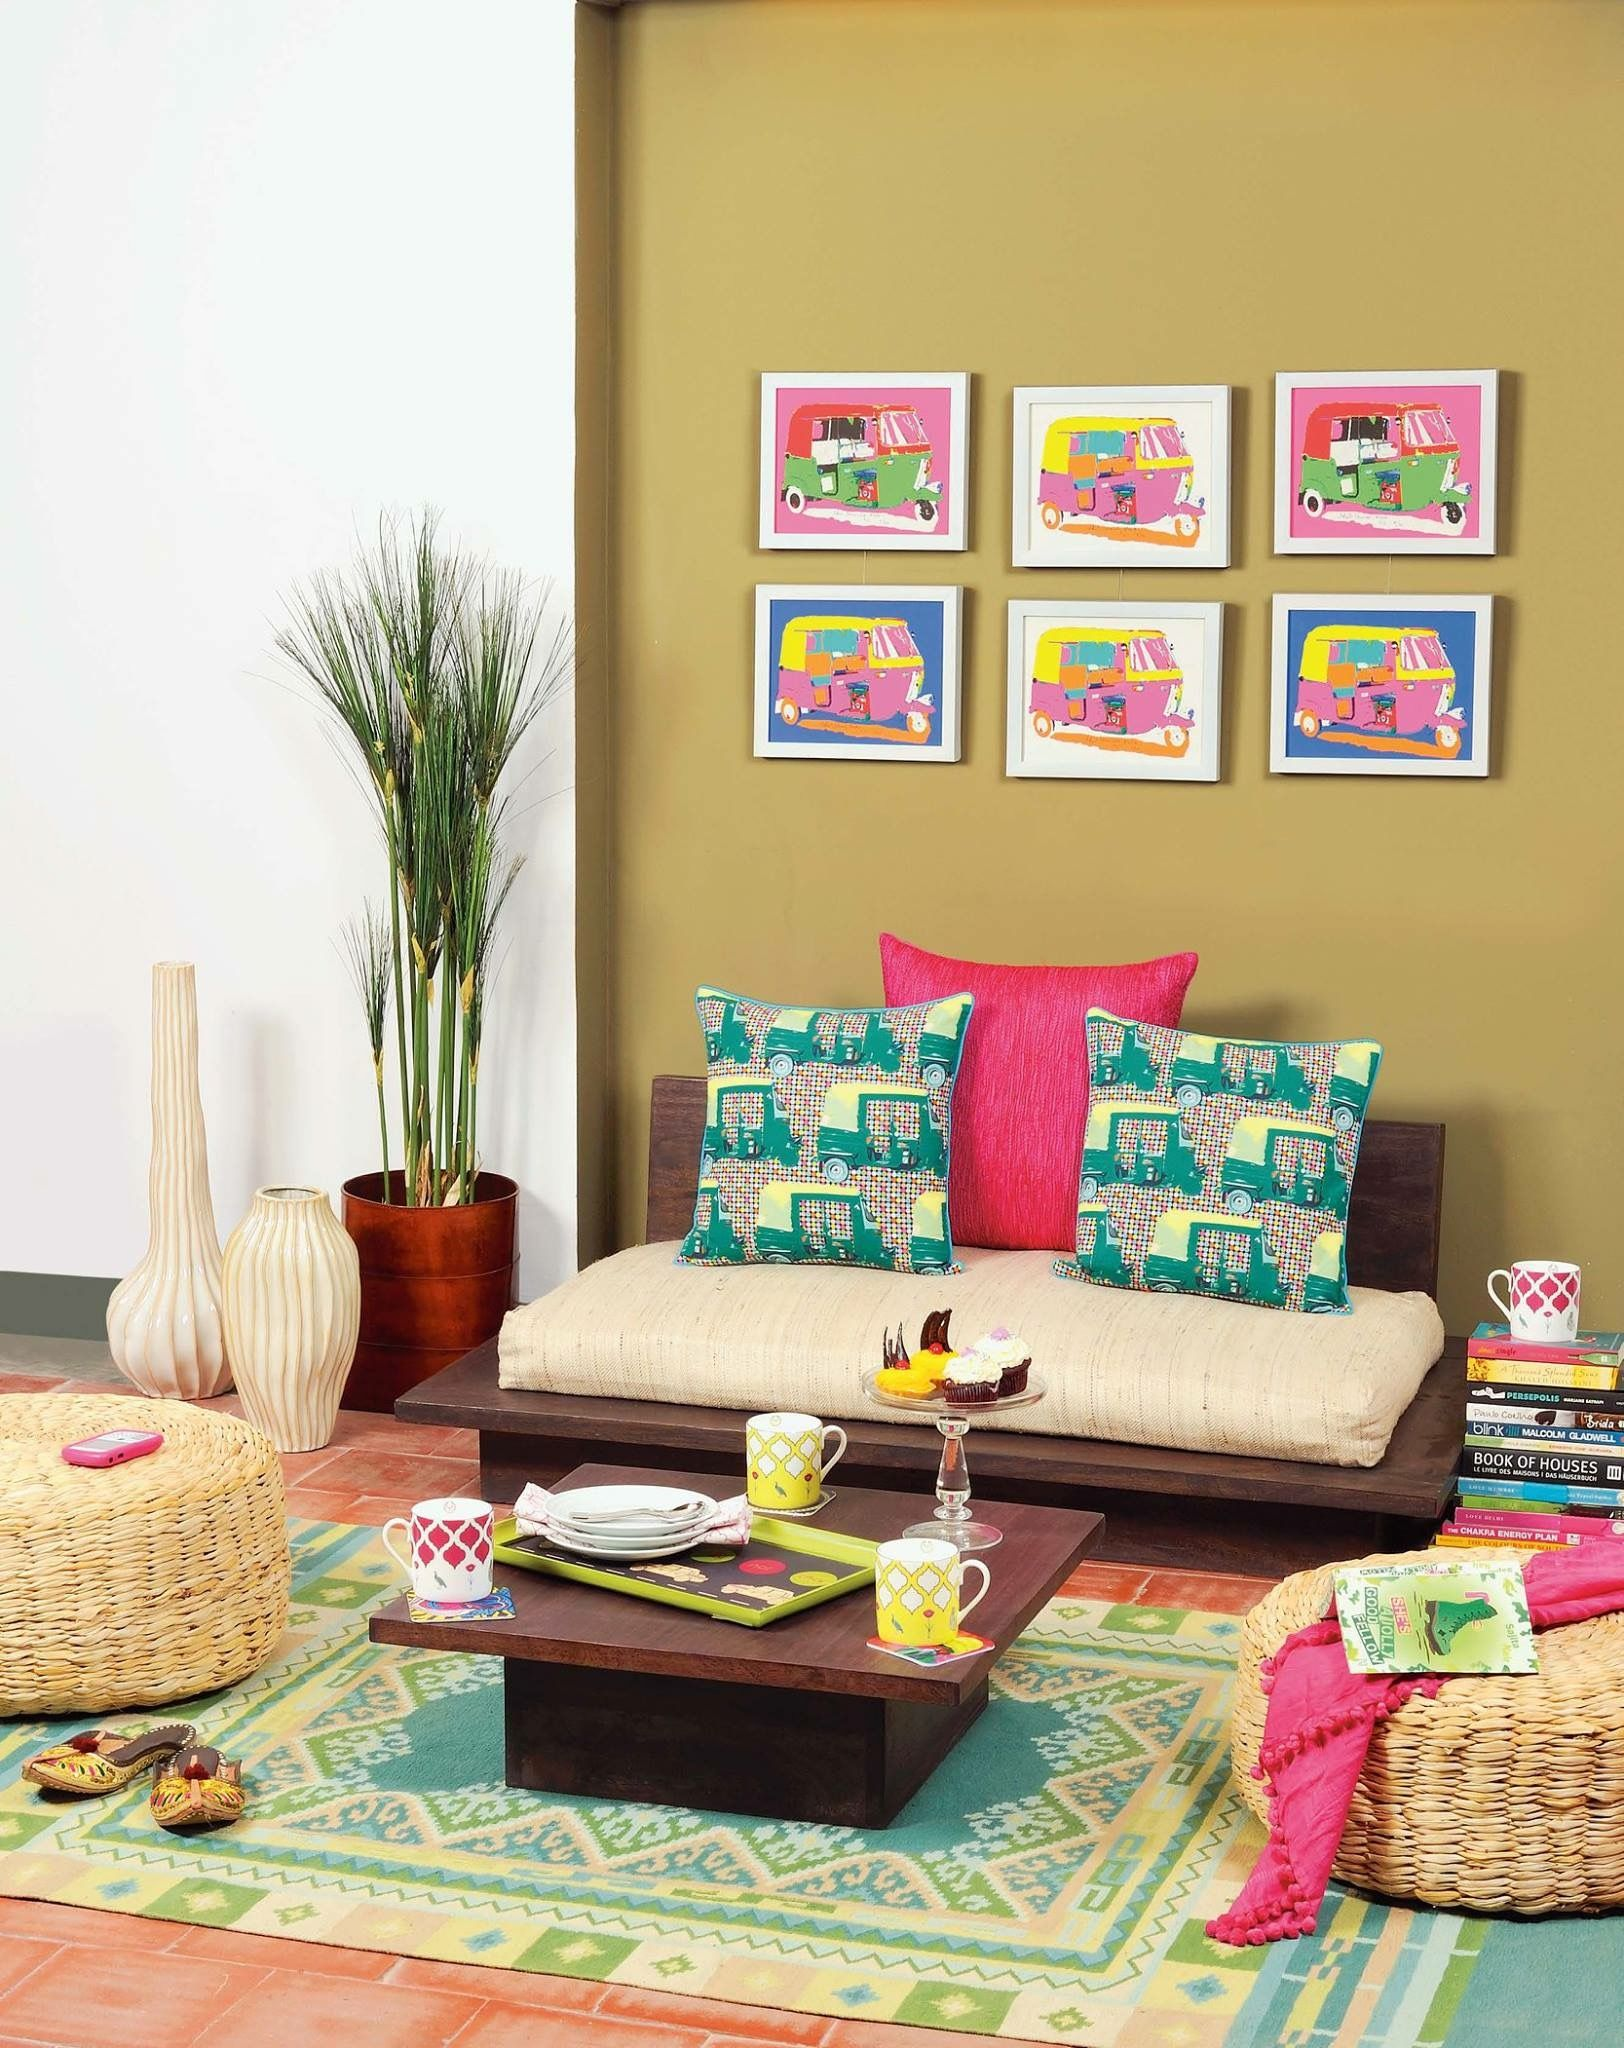 Well thereus no doubt prints can pep up any space and that it will